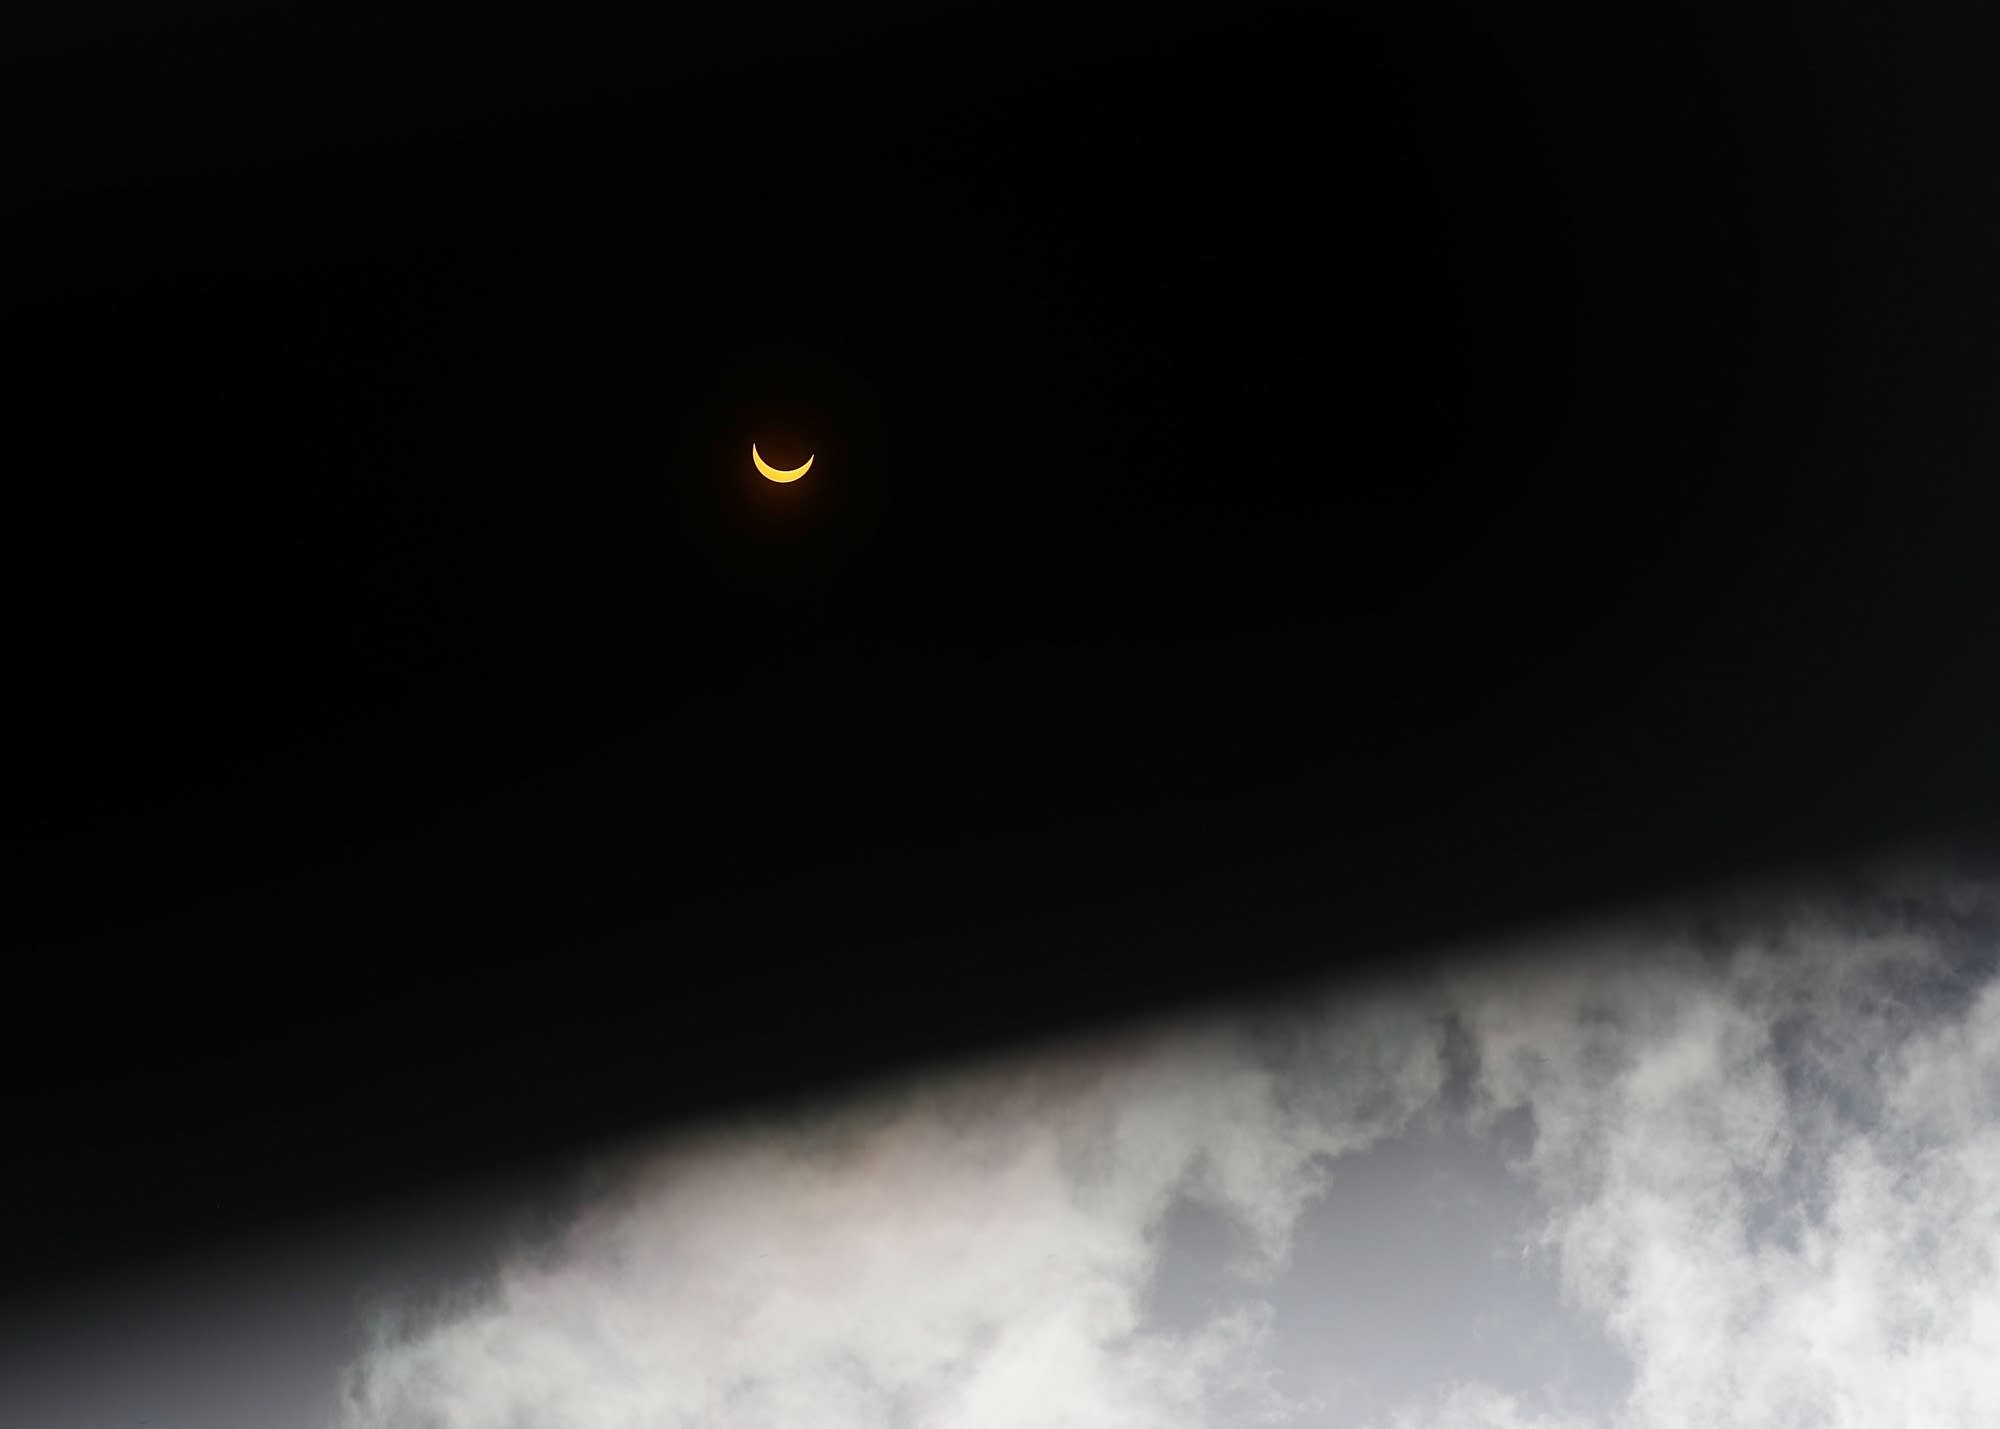 The solar eclipse viewed through dark eclipse glasses in Miami.